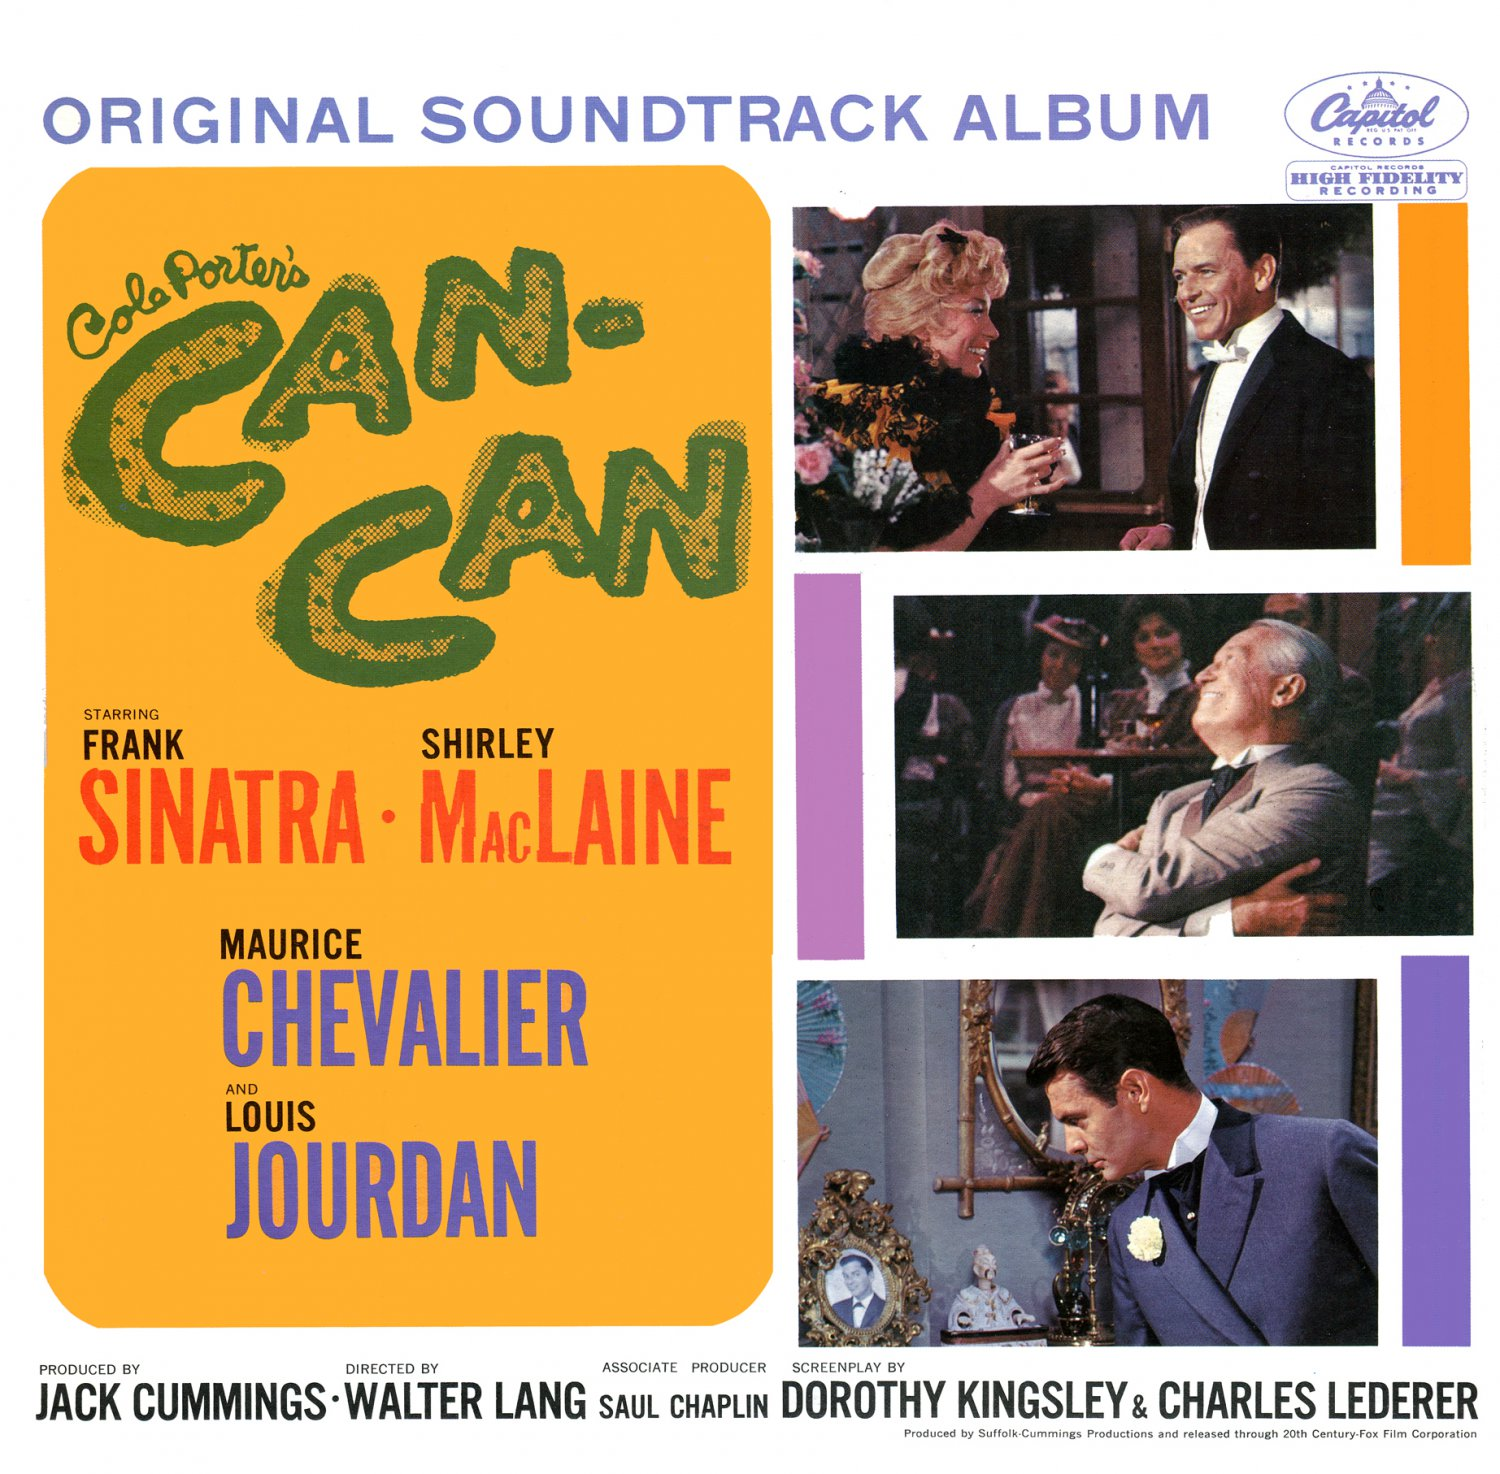 Cole Porter's Can-Can (1960) - Original Film Soundtrack, Frank Sinatra & Shirely MacLaine OST LP/CD